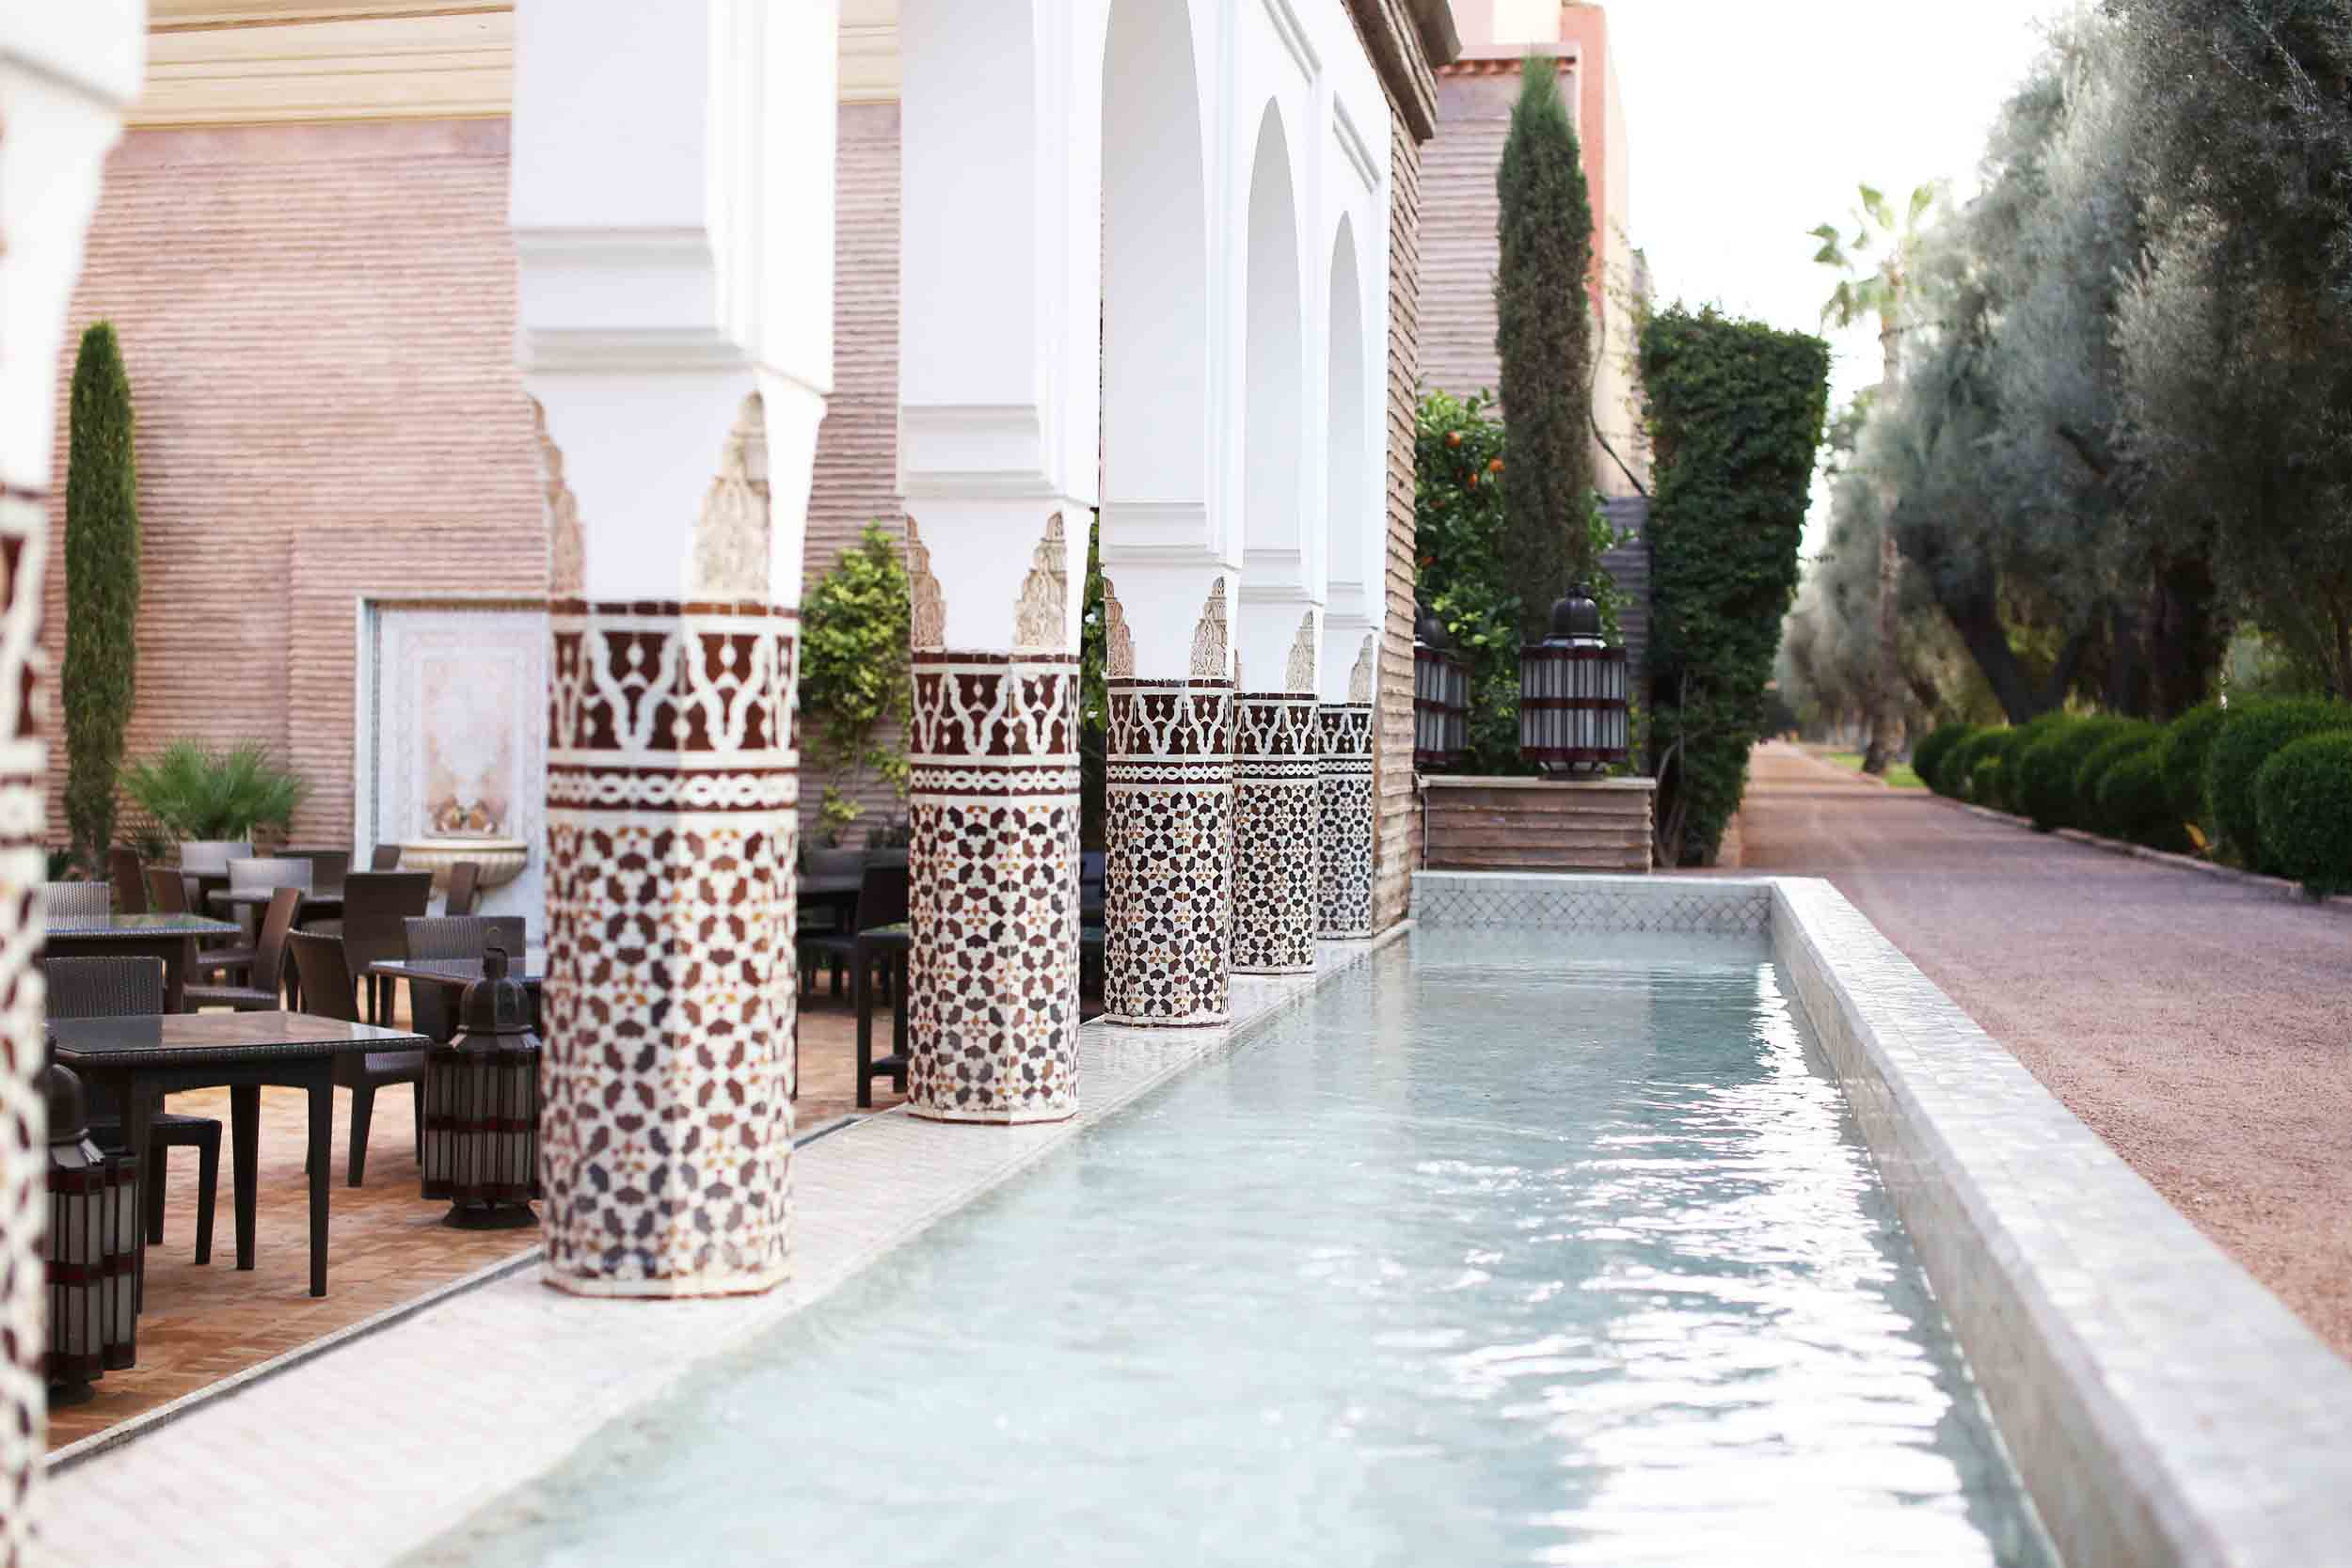 TRAVEL DIARY | HOTEL LA MAMOUNIA, MARRAKECH